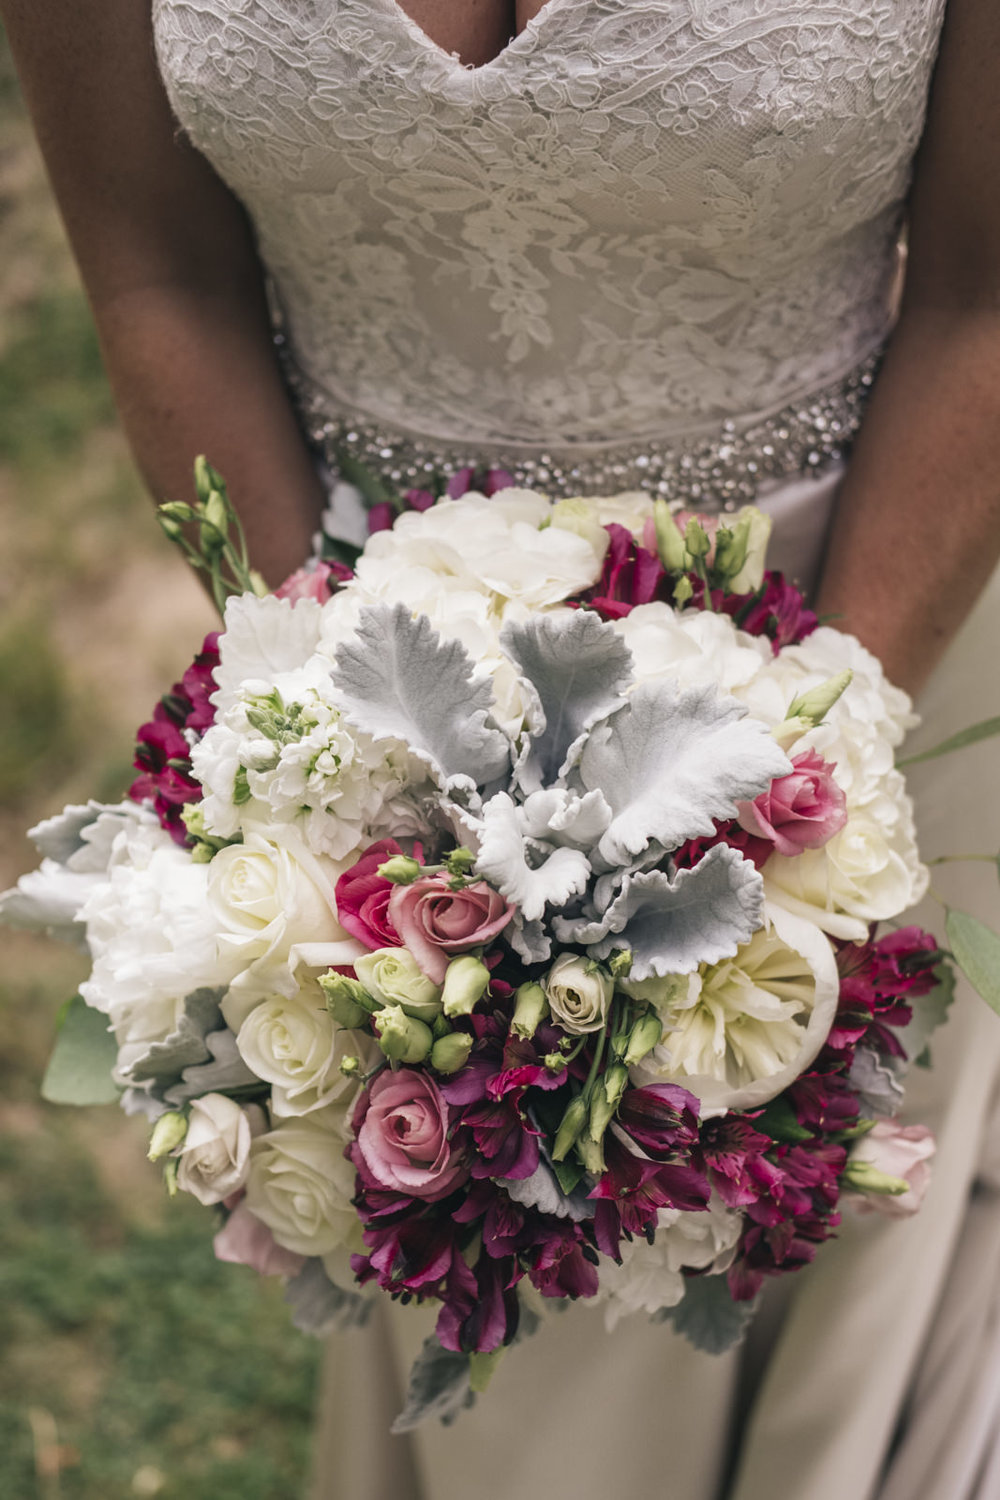 Detail image of the bride's wedding bouquet.